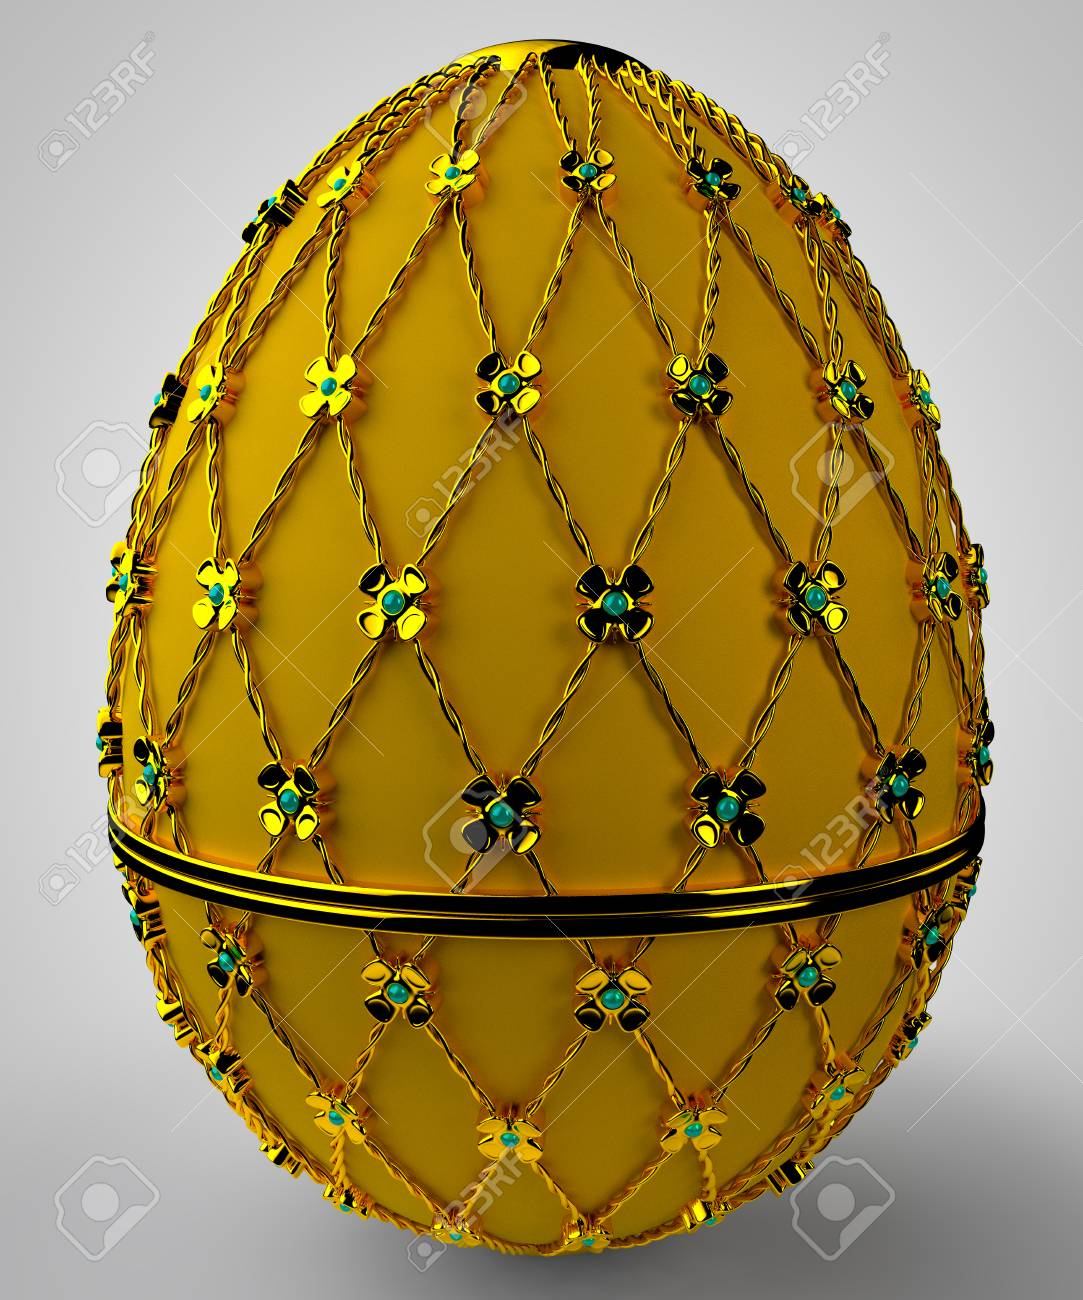 Jewelry egg. 3D render. Stock Photo - 75863073